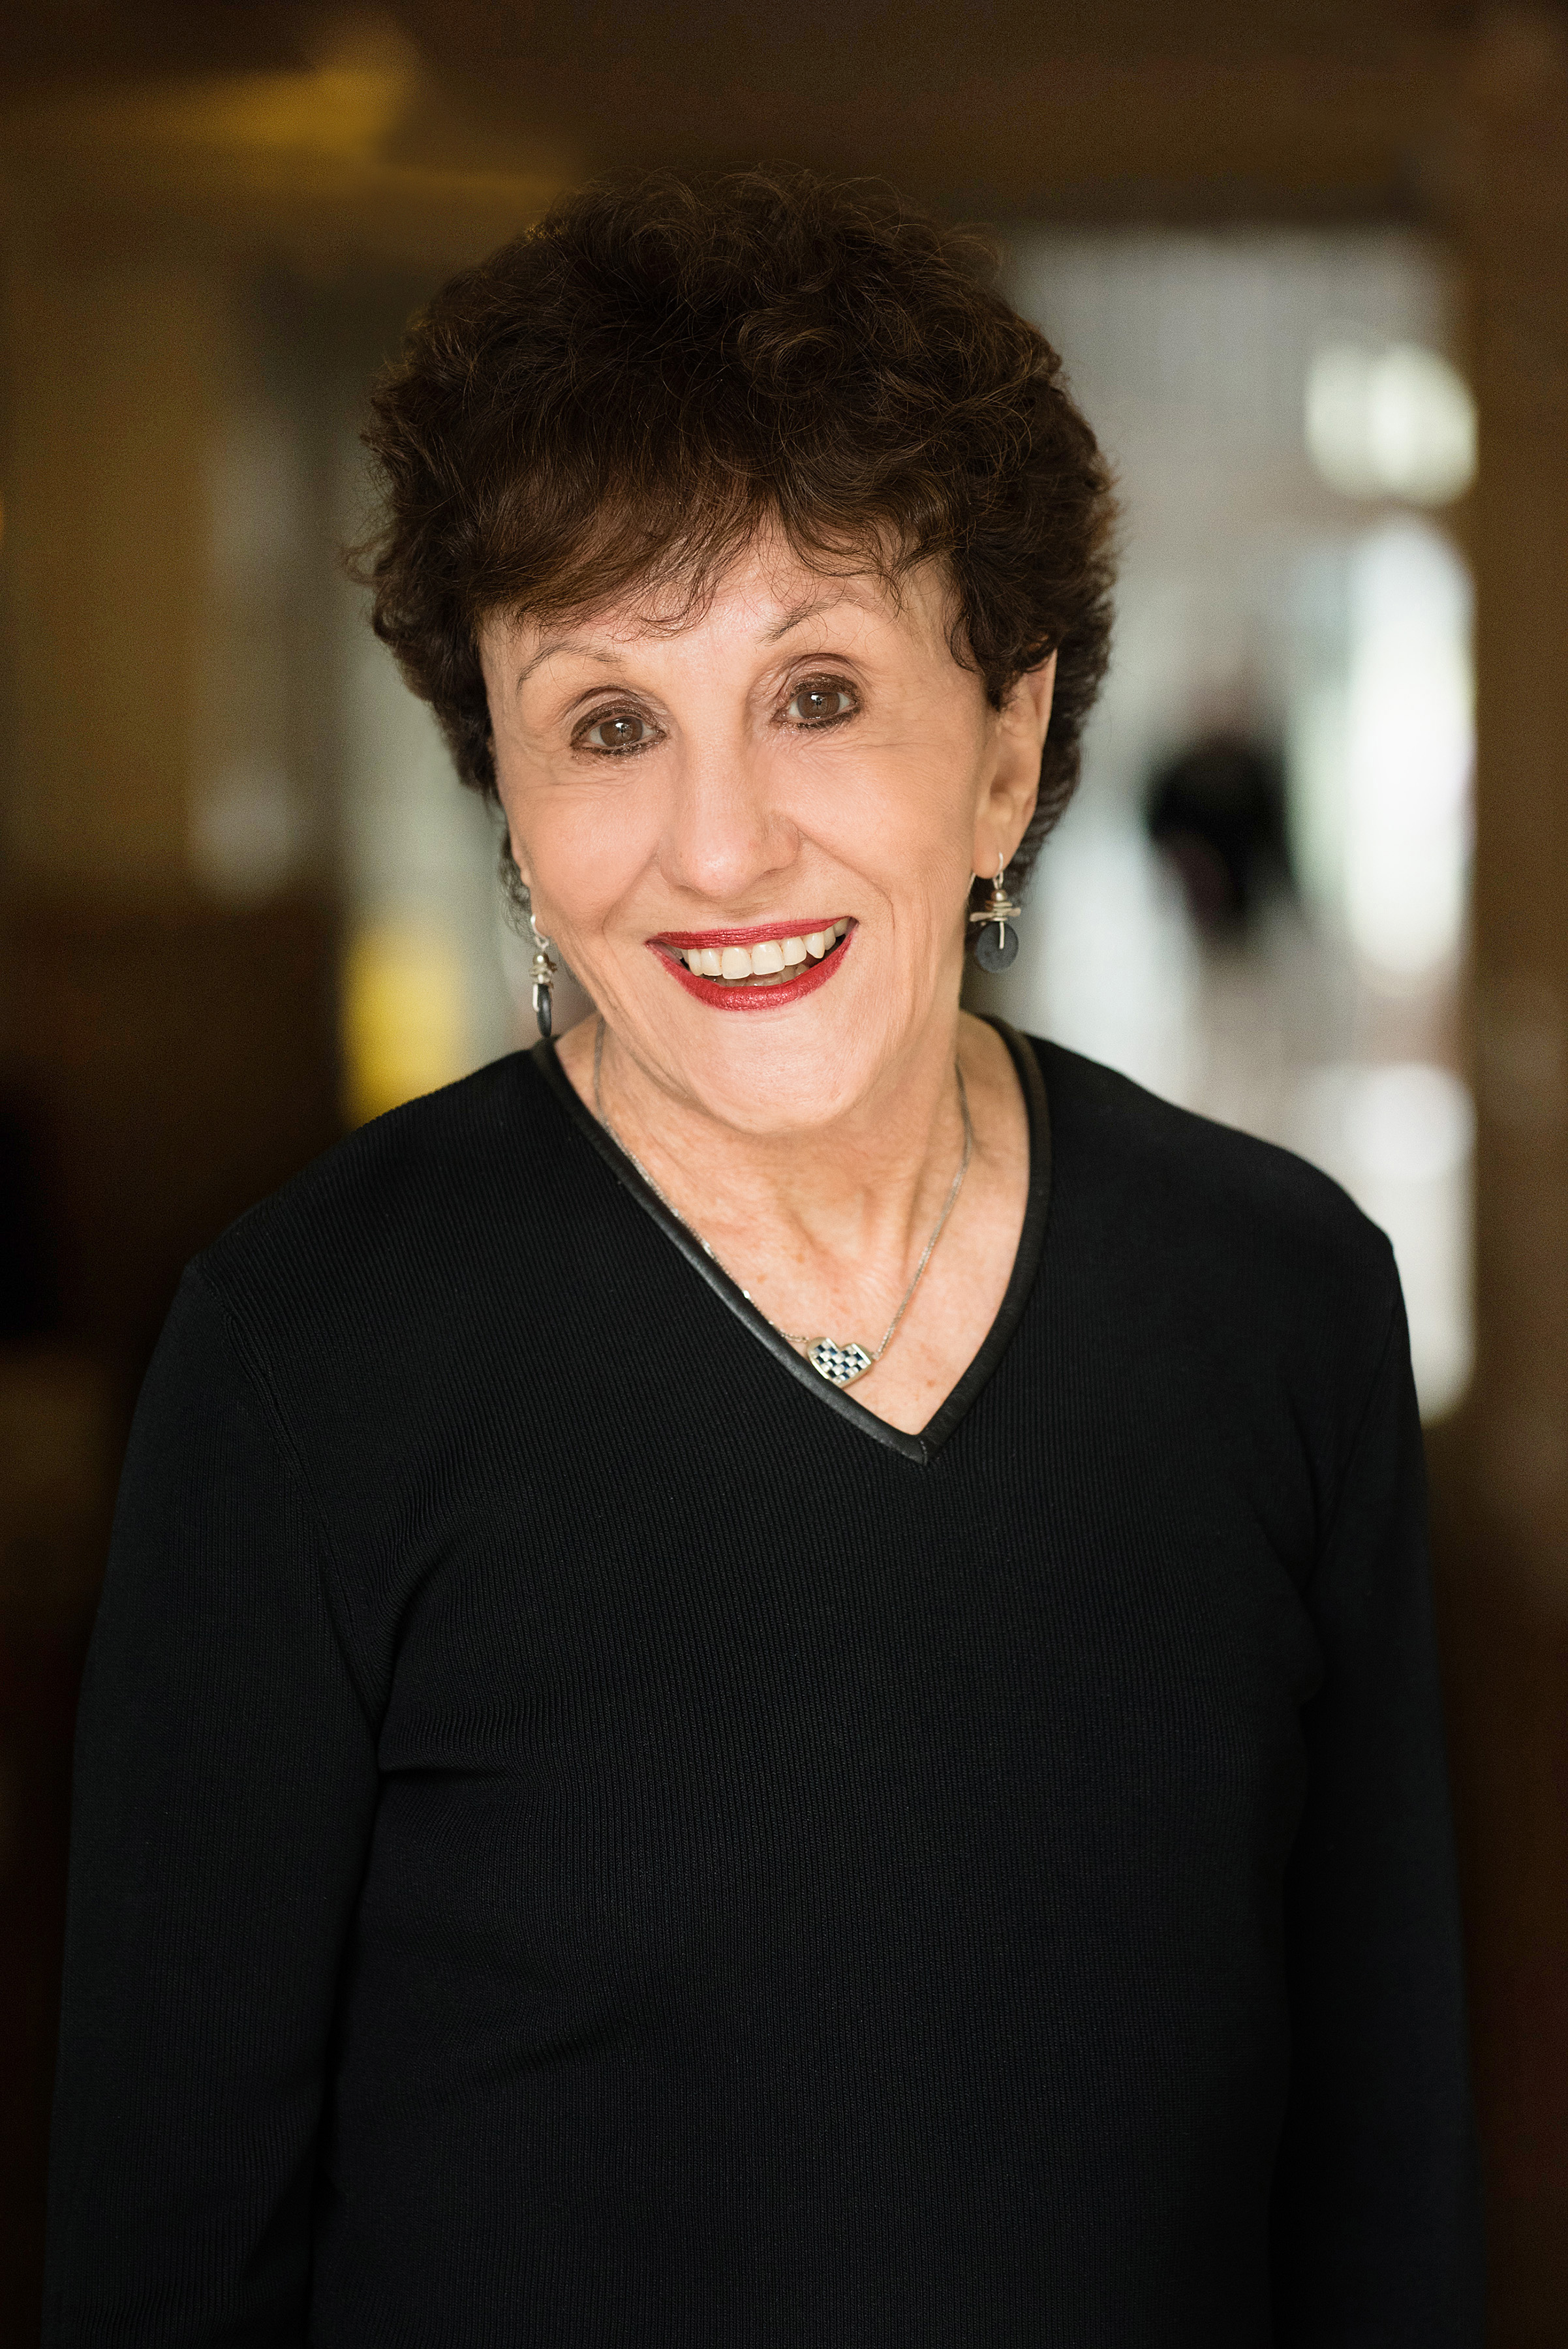 Presenter: Dr. Beverly Kaye